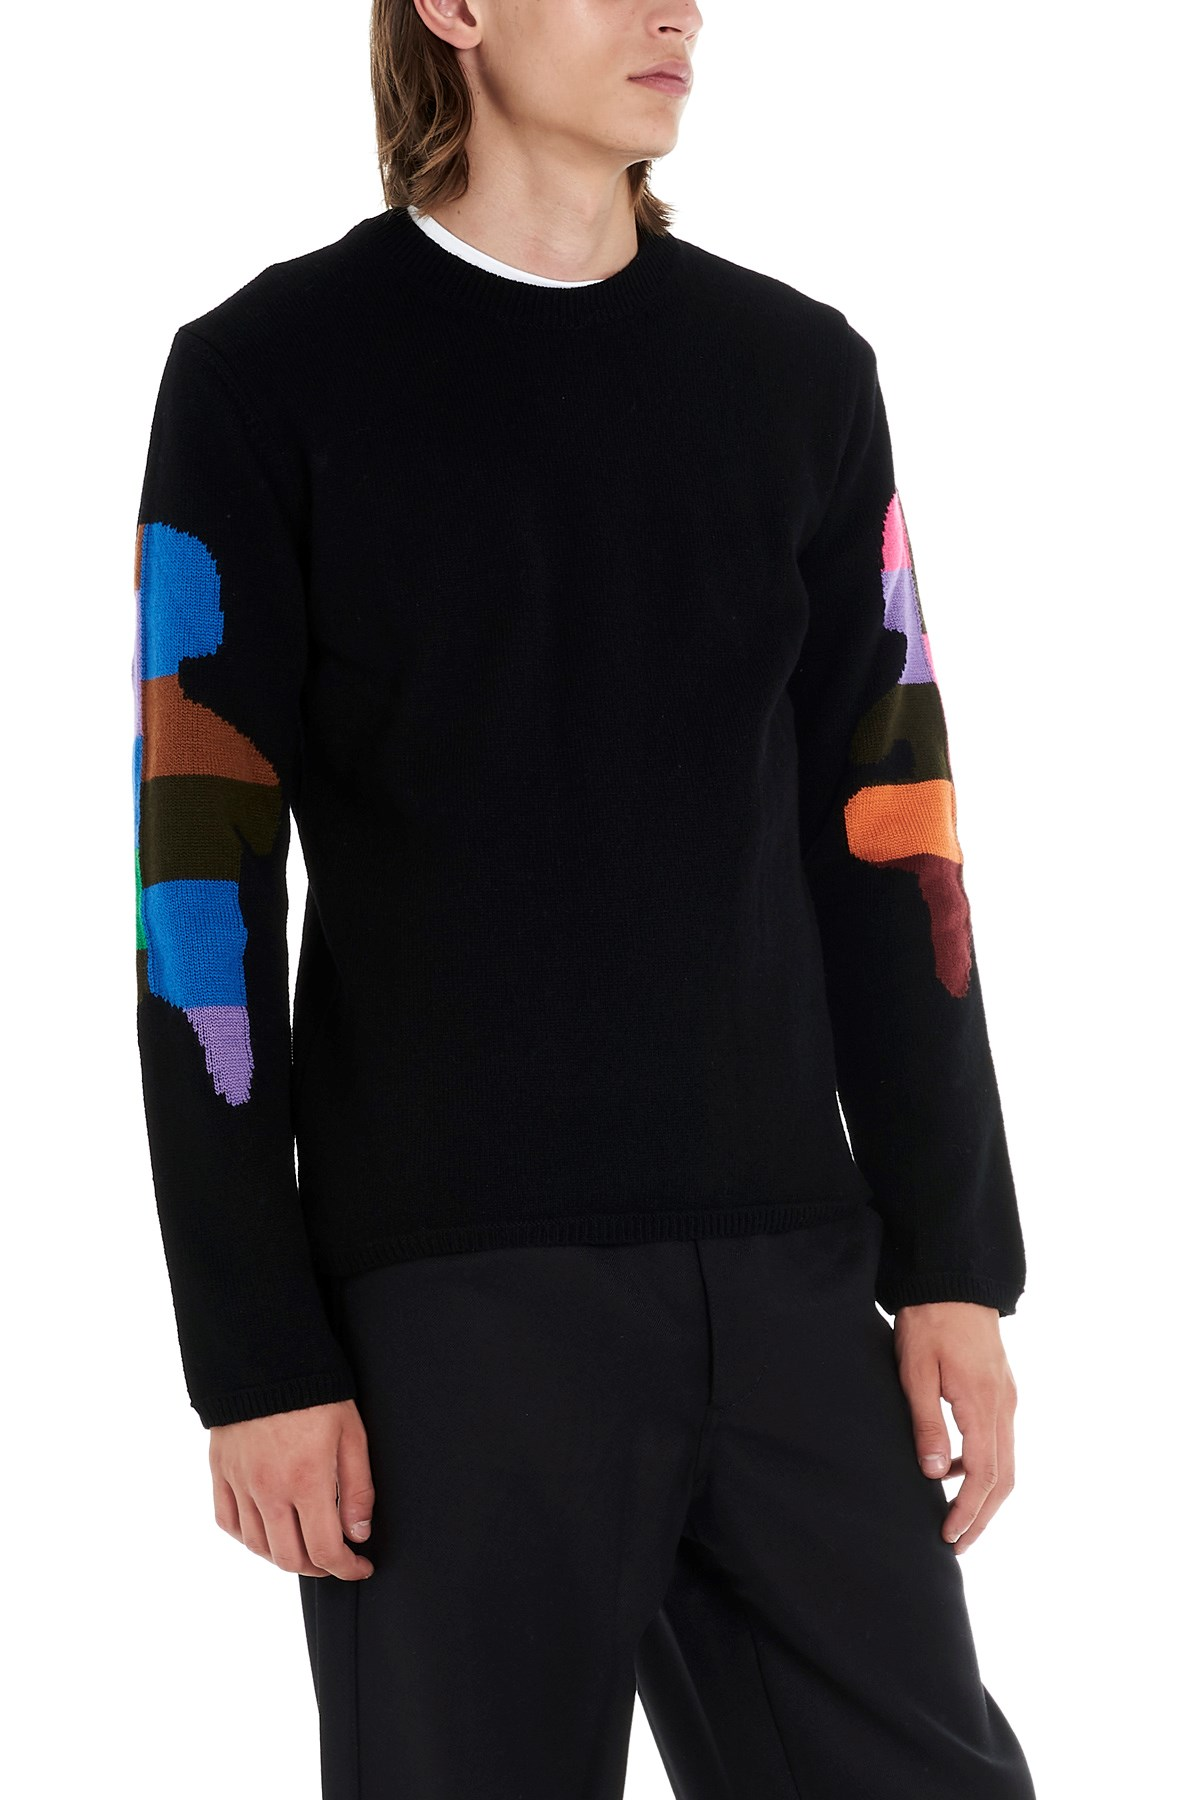 outlet cdc65 6a160 comme des garcons shirt Maglione intarsio su www.julian ...